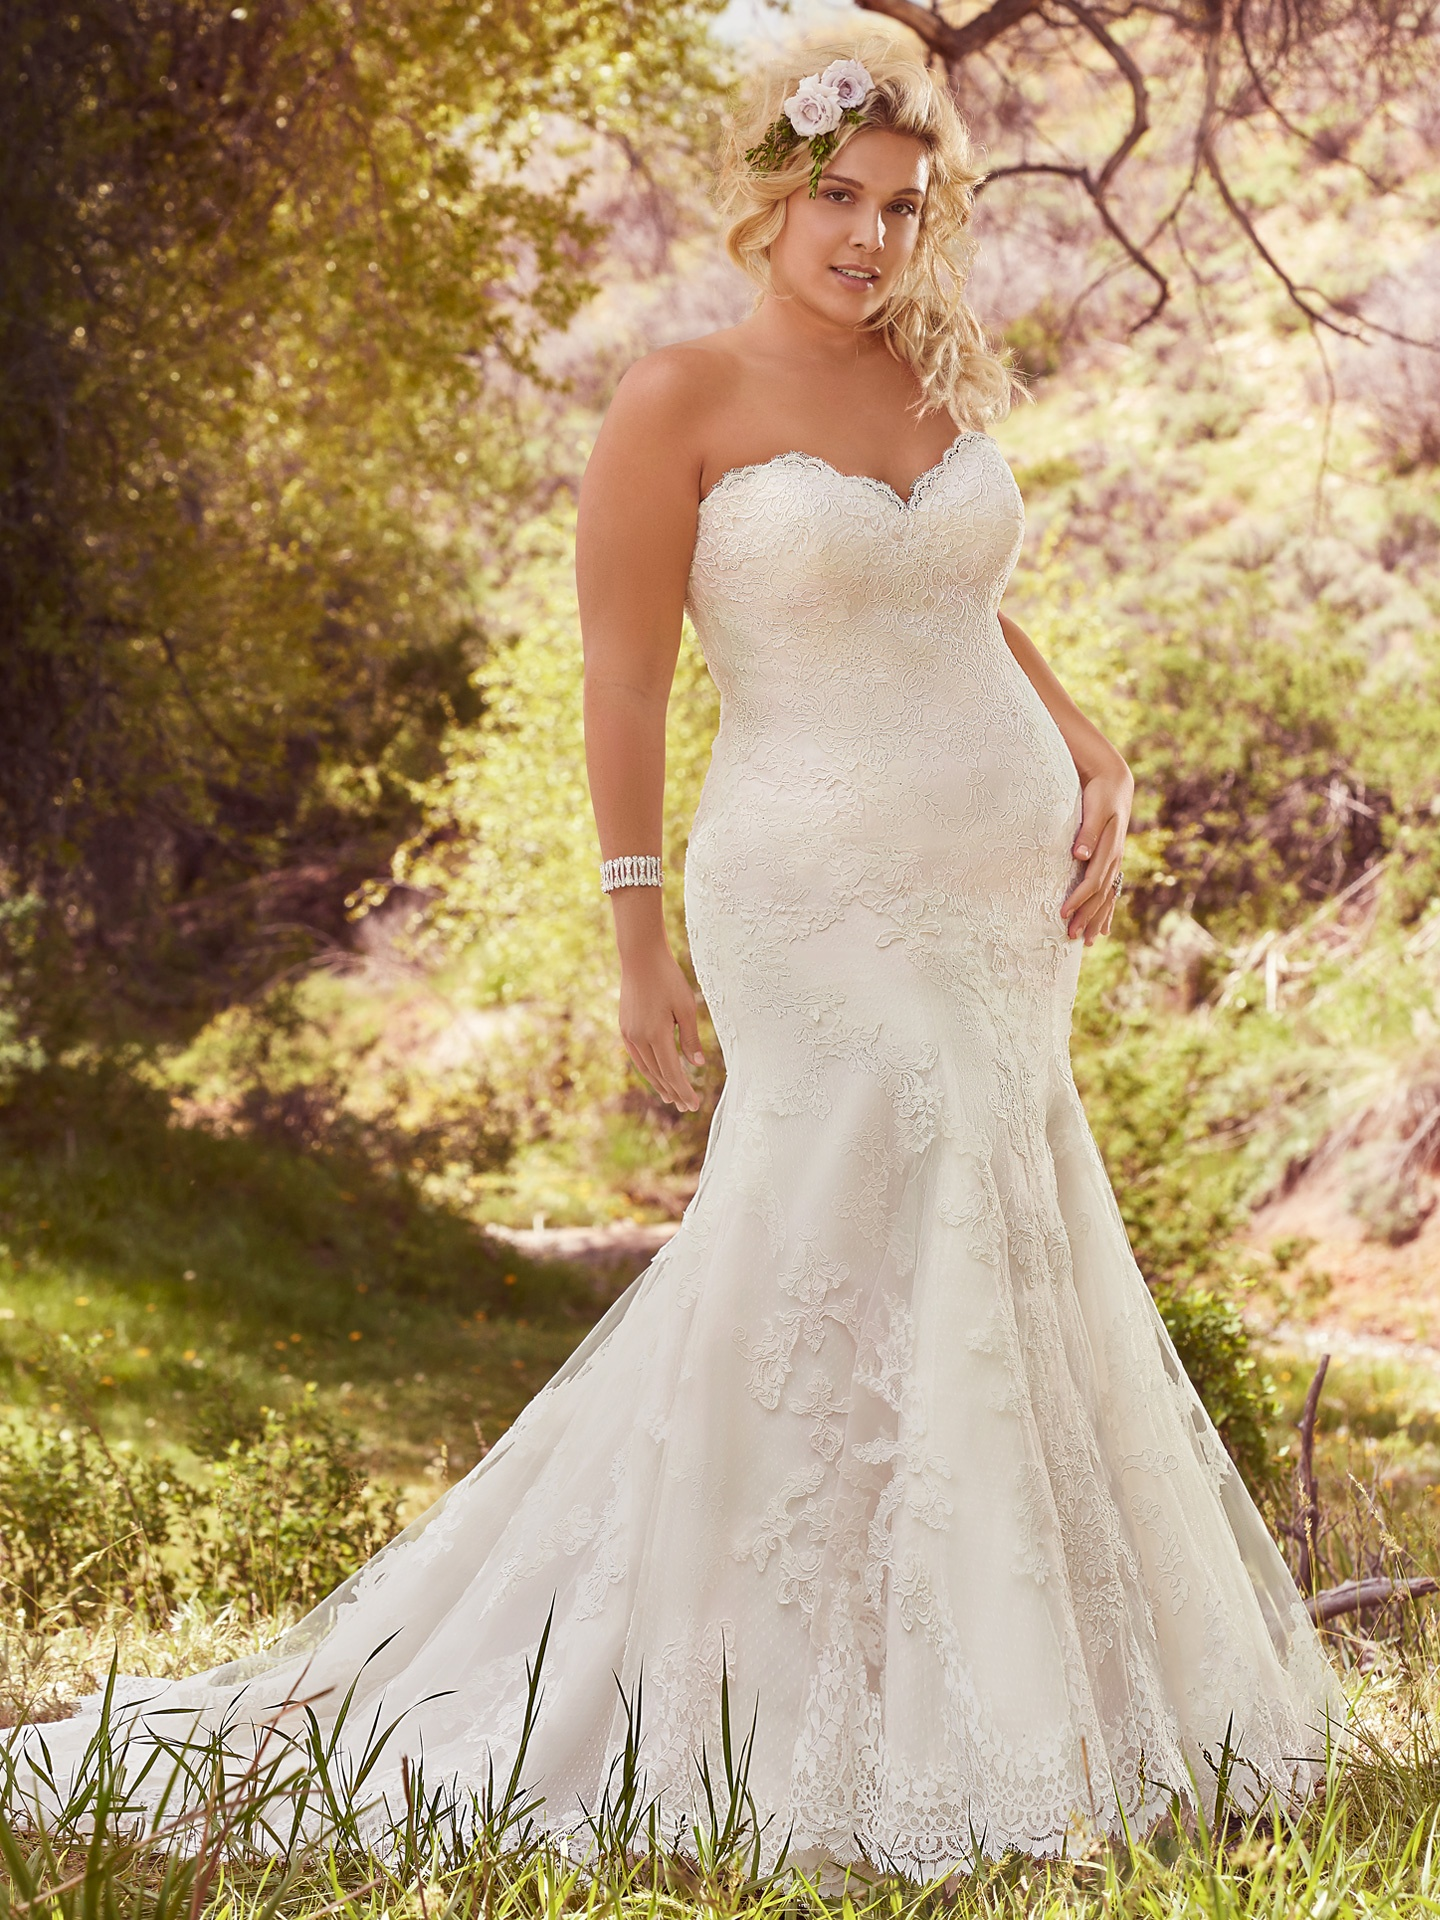 Flattering Wedding Dresses for Curvy Brides - Cadence by Maggie Sottero